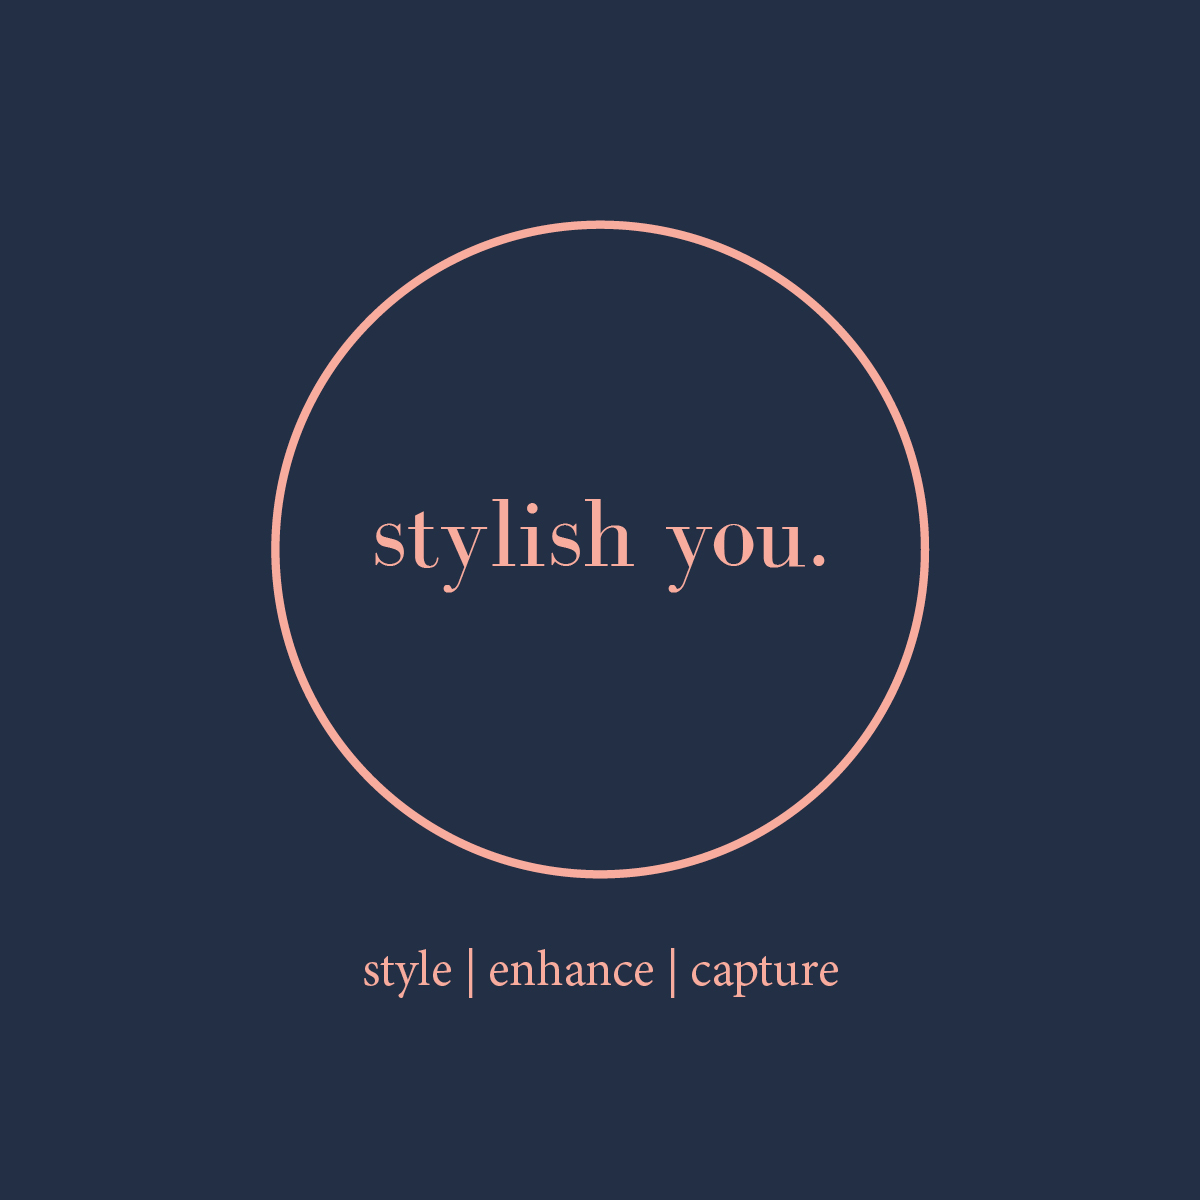 stylish you.  - Logo design for small business 'stylish you.', a company specialising in all inclusive personal styling packages including an HMU Photoshoot.